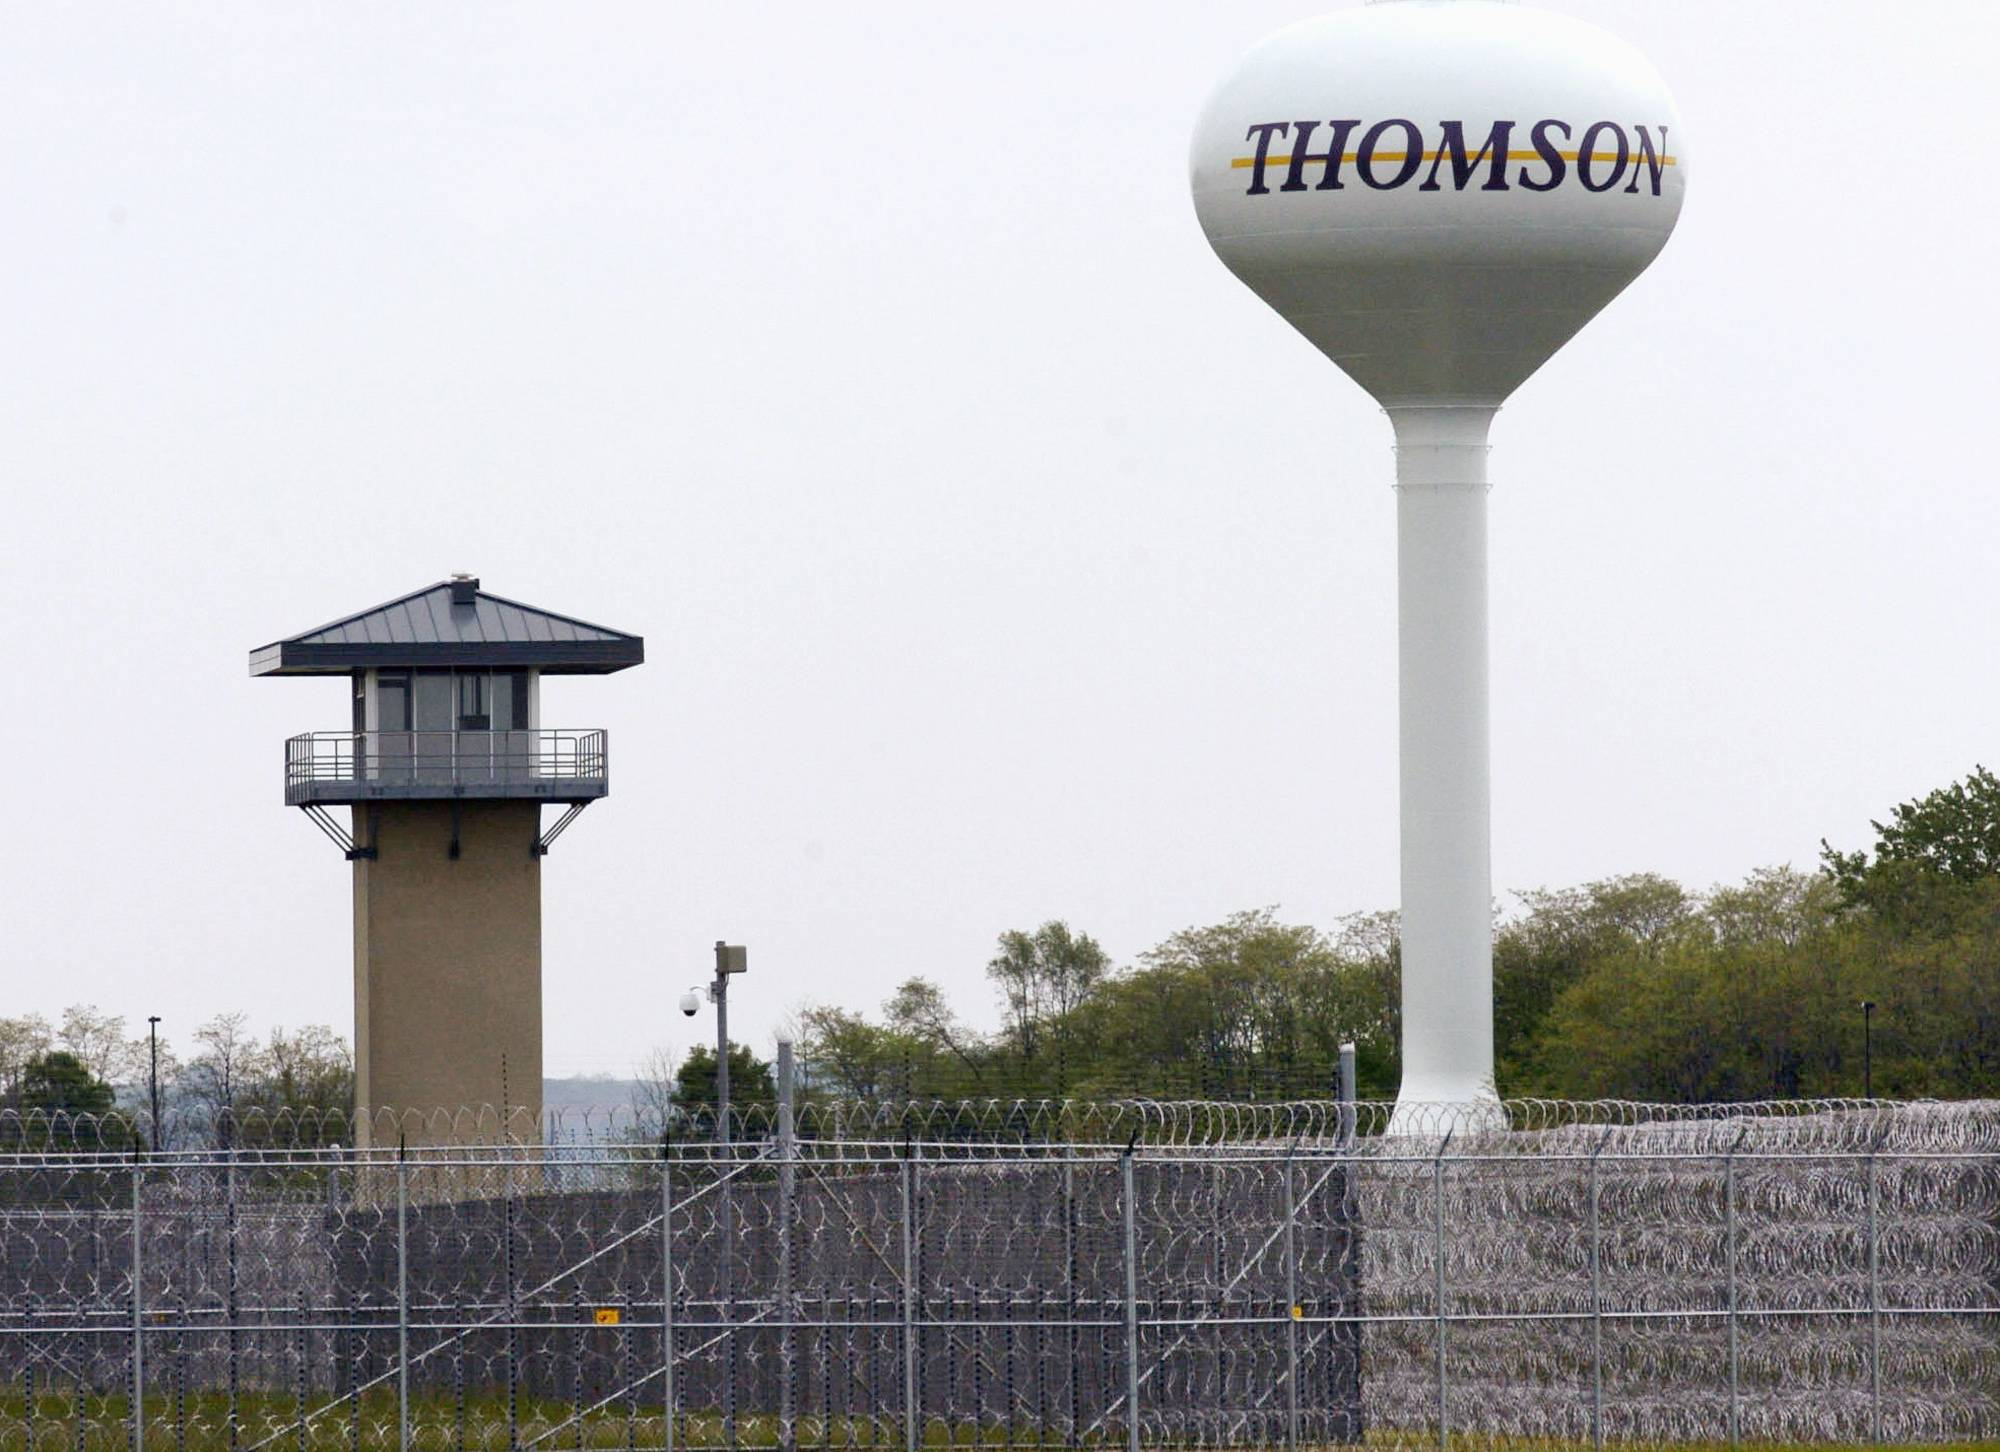 The federal Bureau of Prisons is hiring 15 workers for the Thomson Correctional Center in northwestern Illinois. The job postings are on USAJobs.gov.